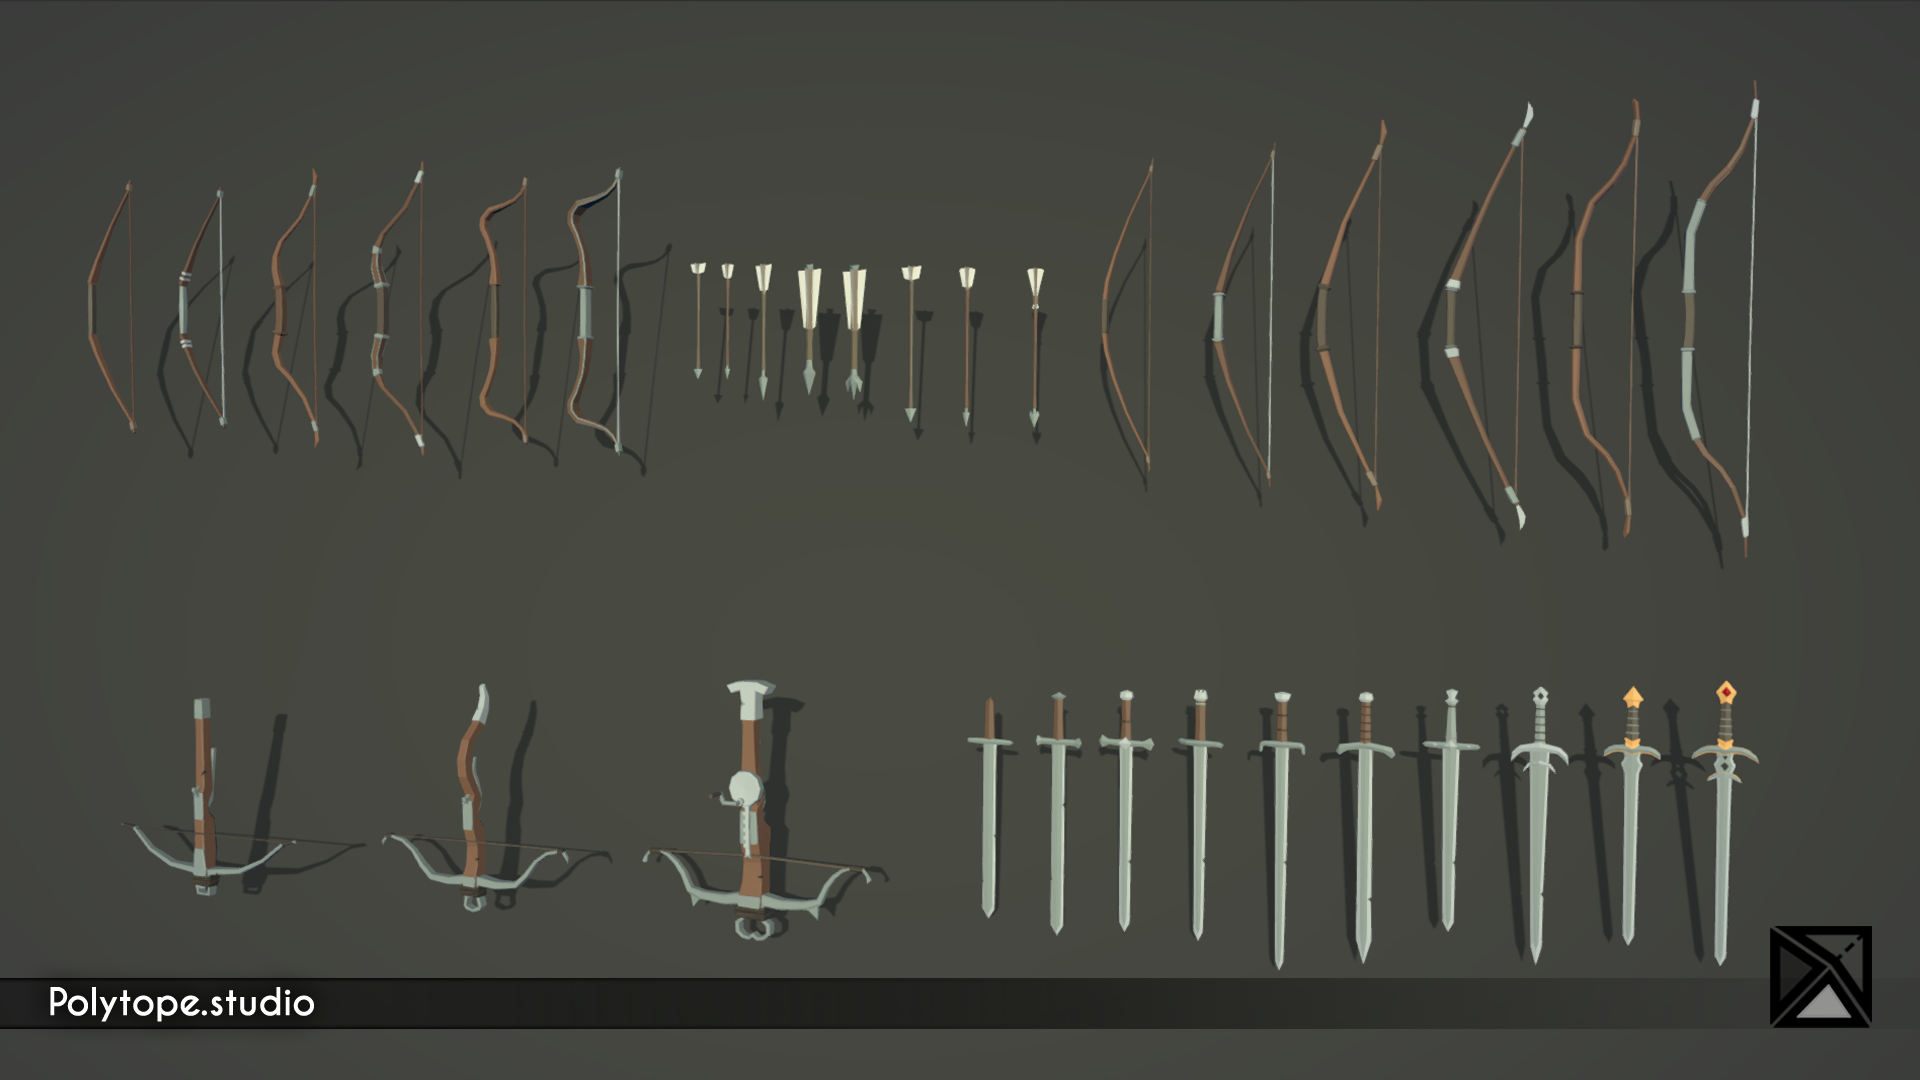 PT_Medieval_Lowpoly_Weapons_Bows_Swords_Crossbows_Arrows.png